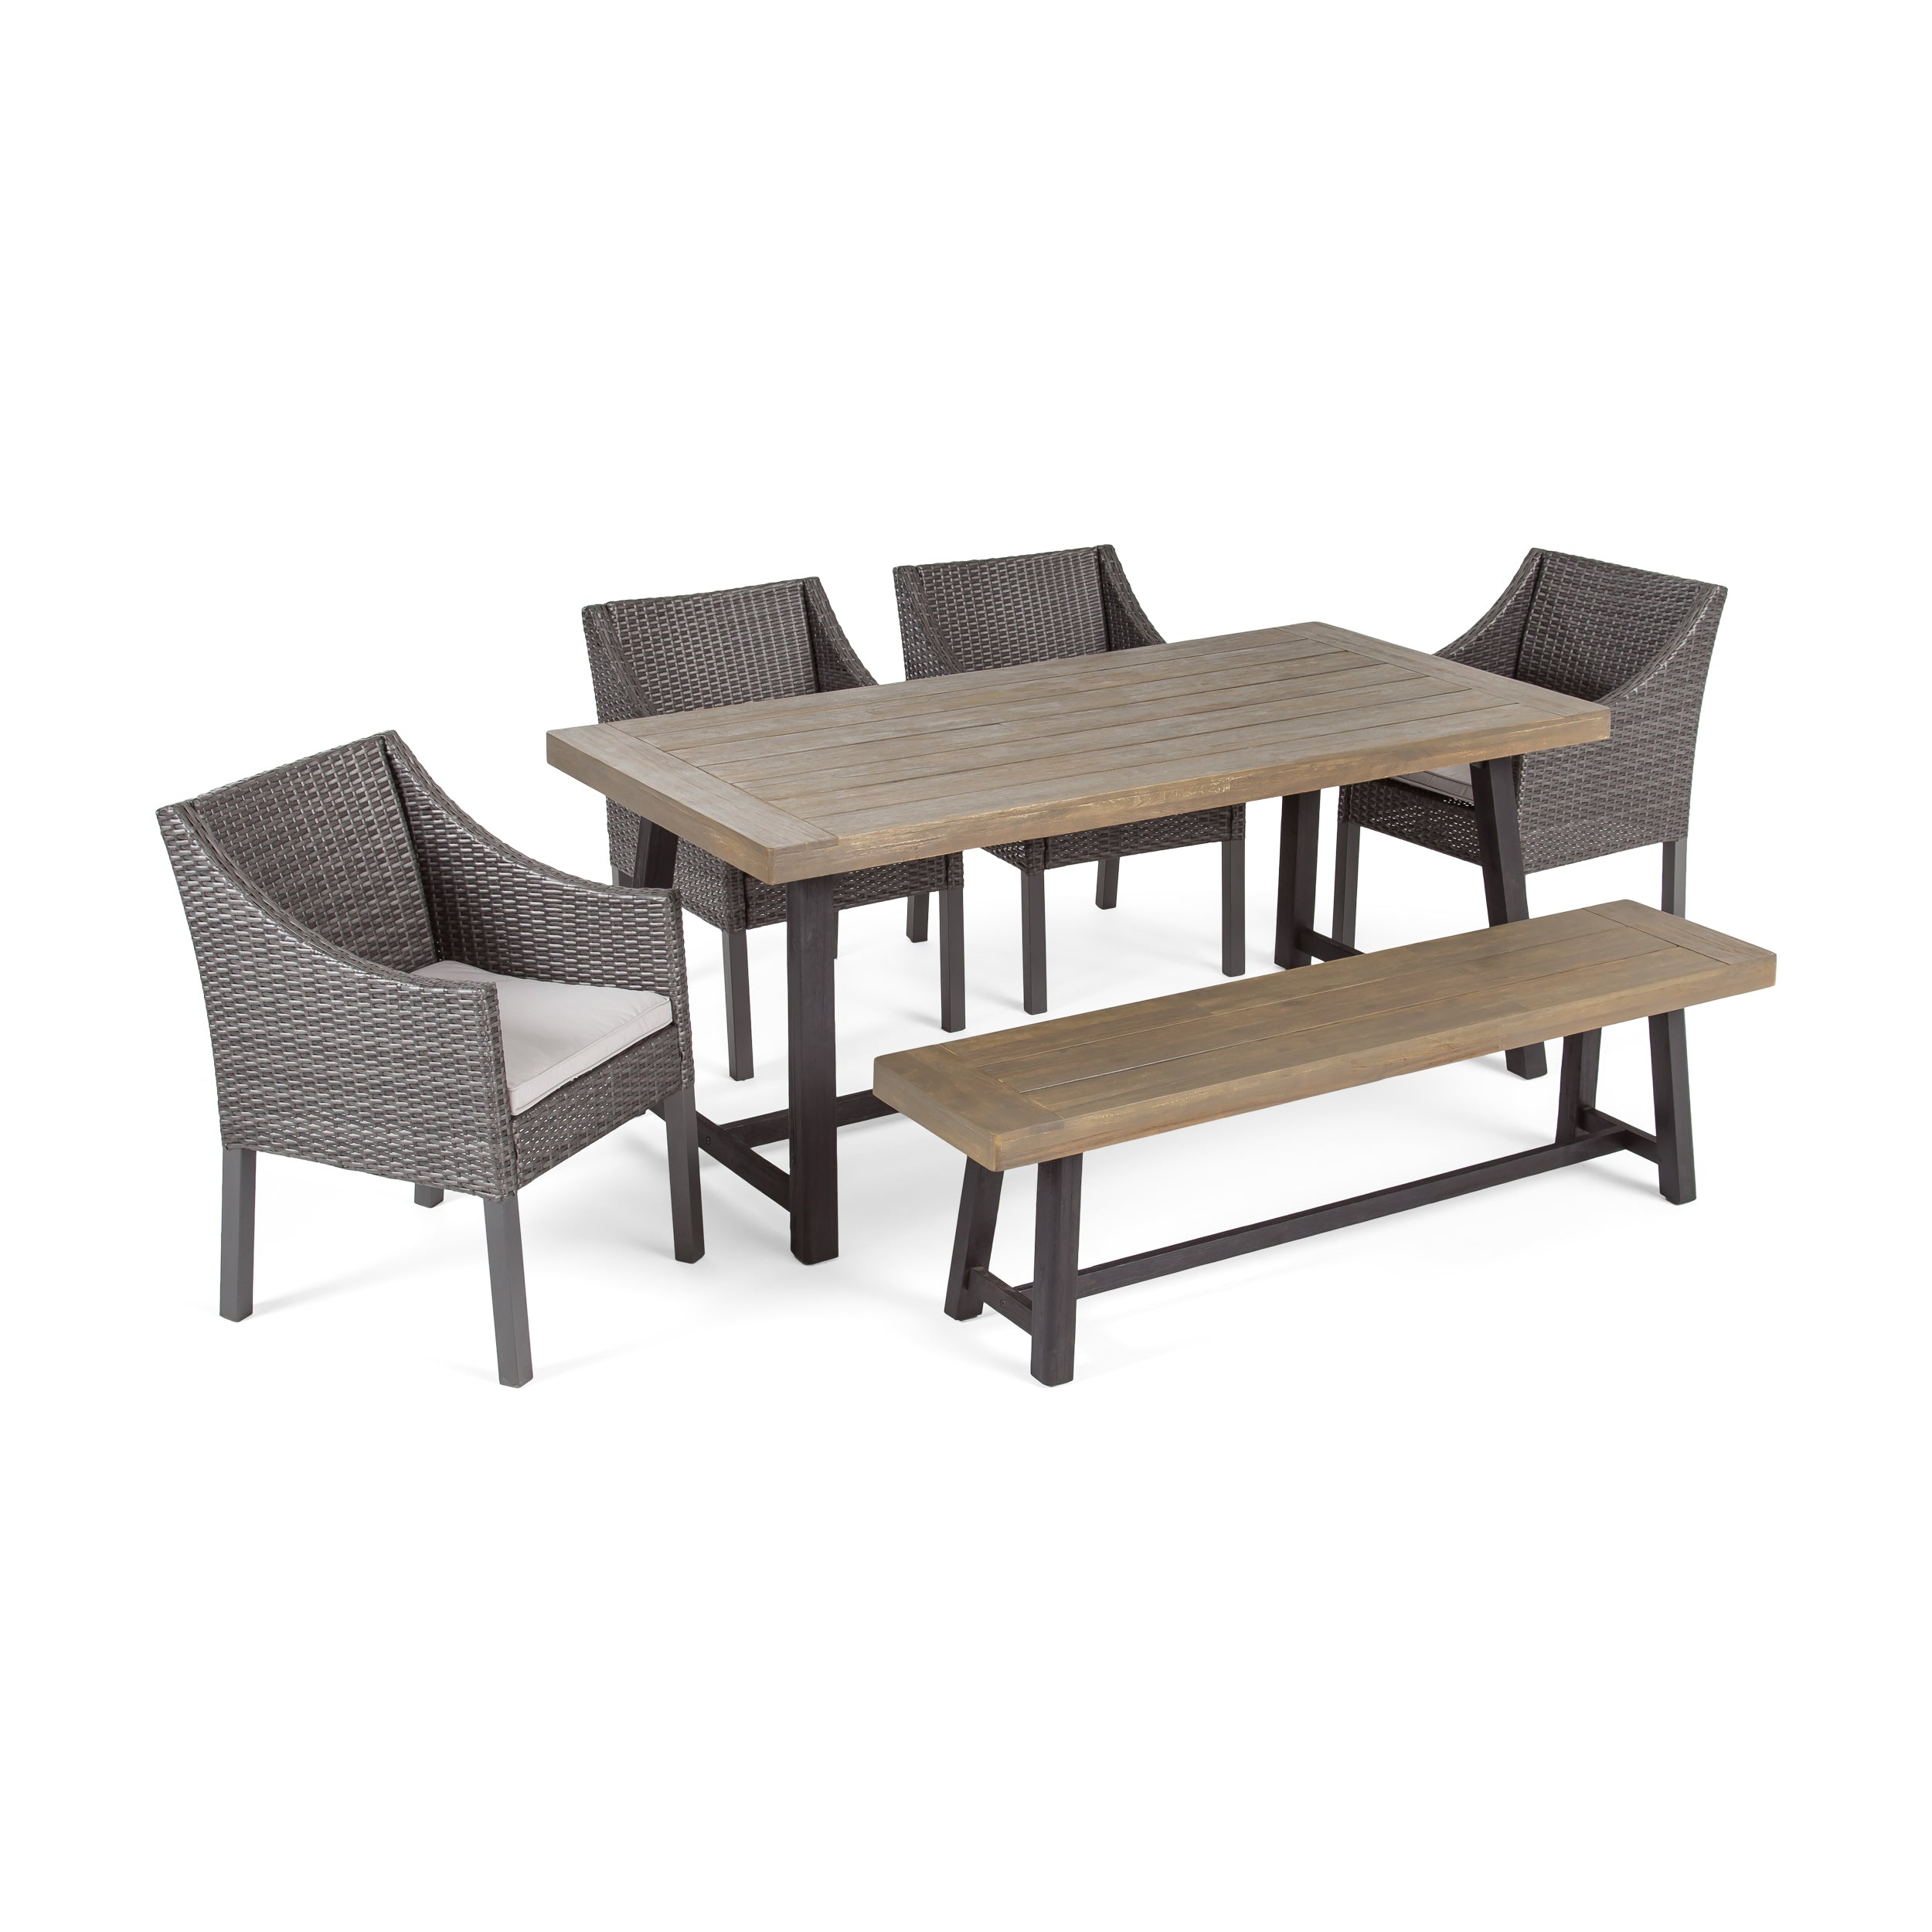 Anniston Outdoor 6 Piece Dining Set with Wicker Chairs and Bench Default Title